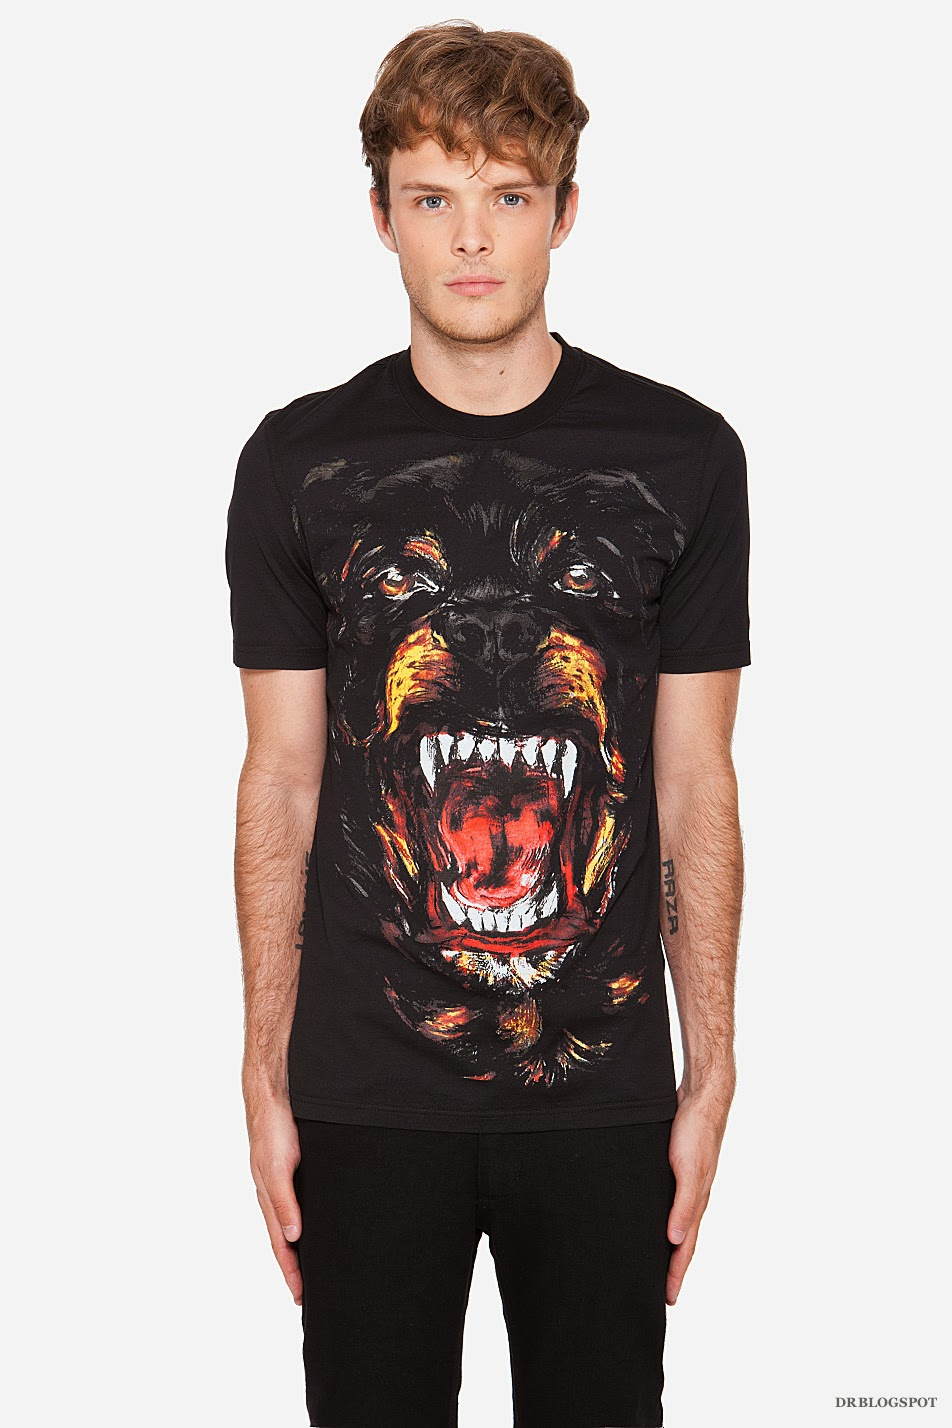 Givenchy Rottweiler Print Cuban Fit T Shirt: givenchy t shirt price